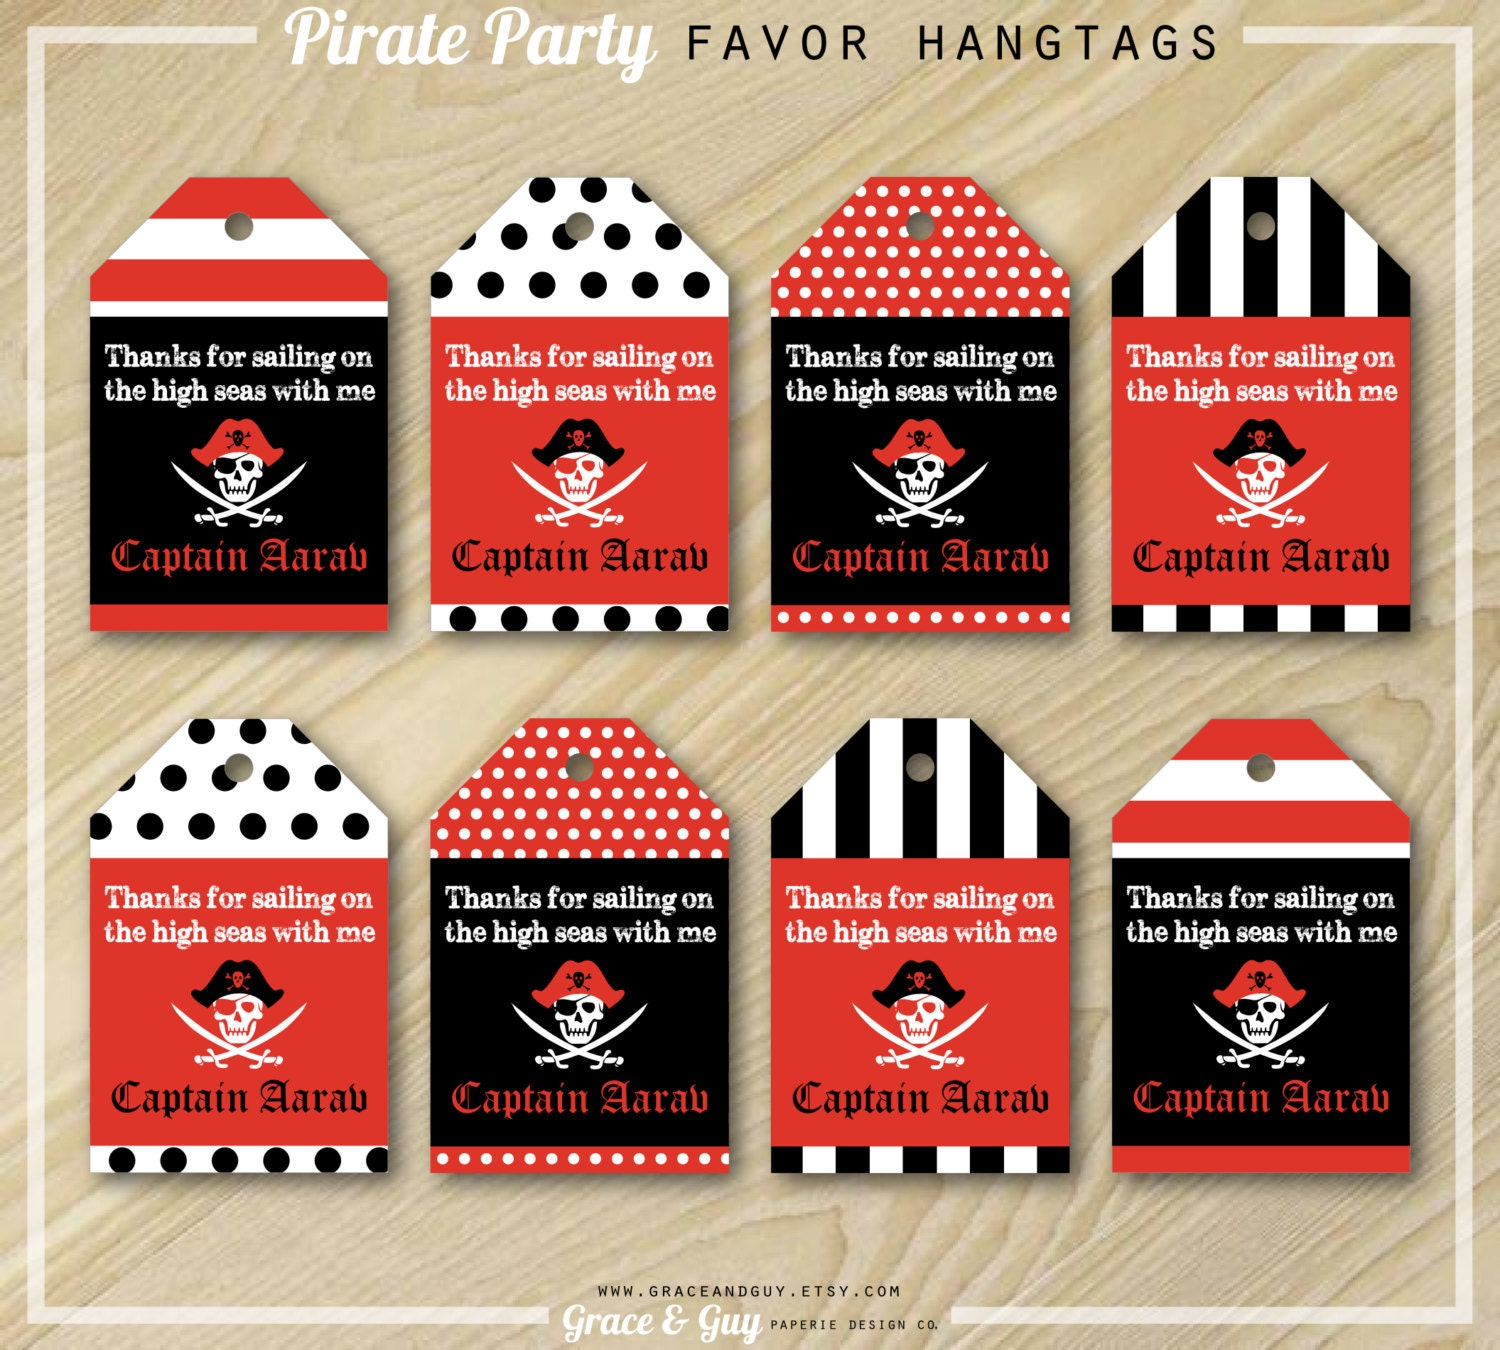 Versatile image intended for printable party favor tags